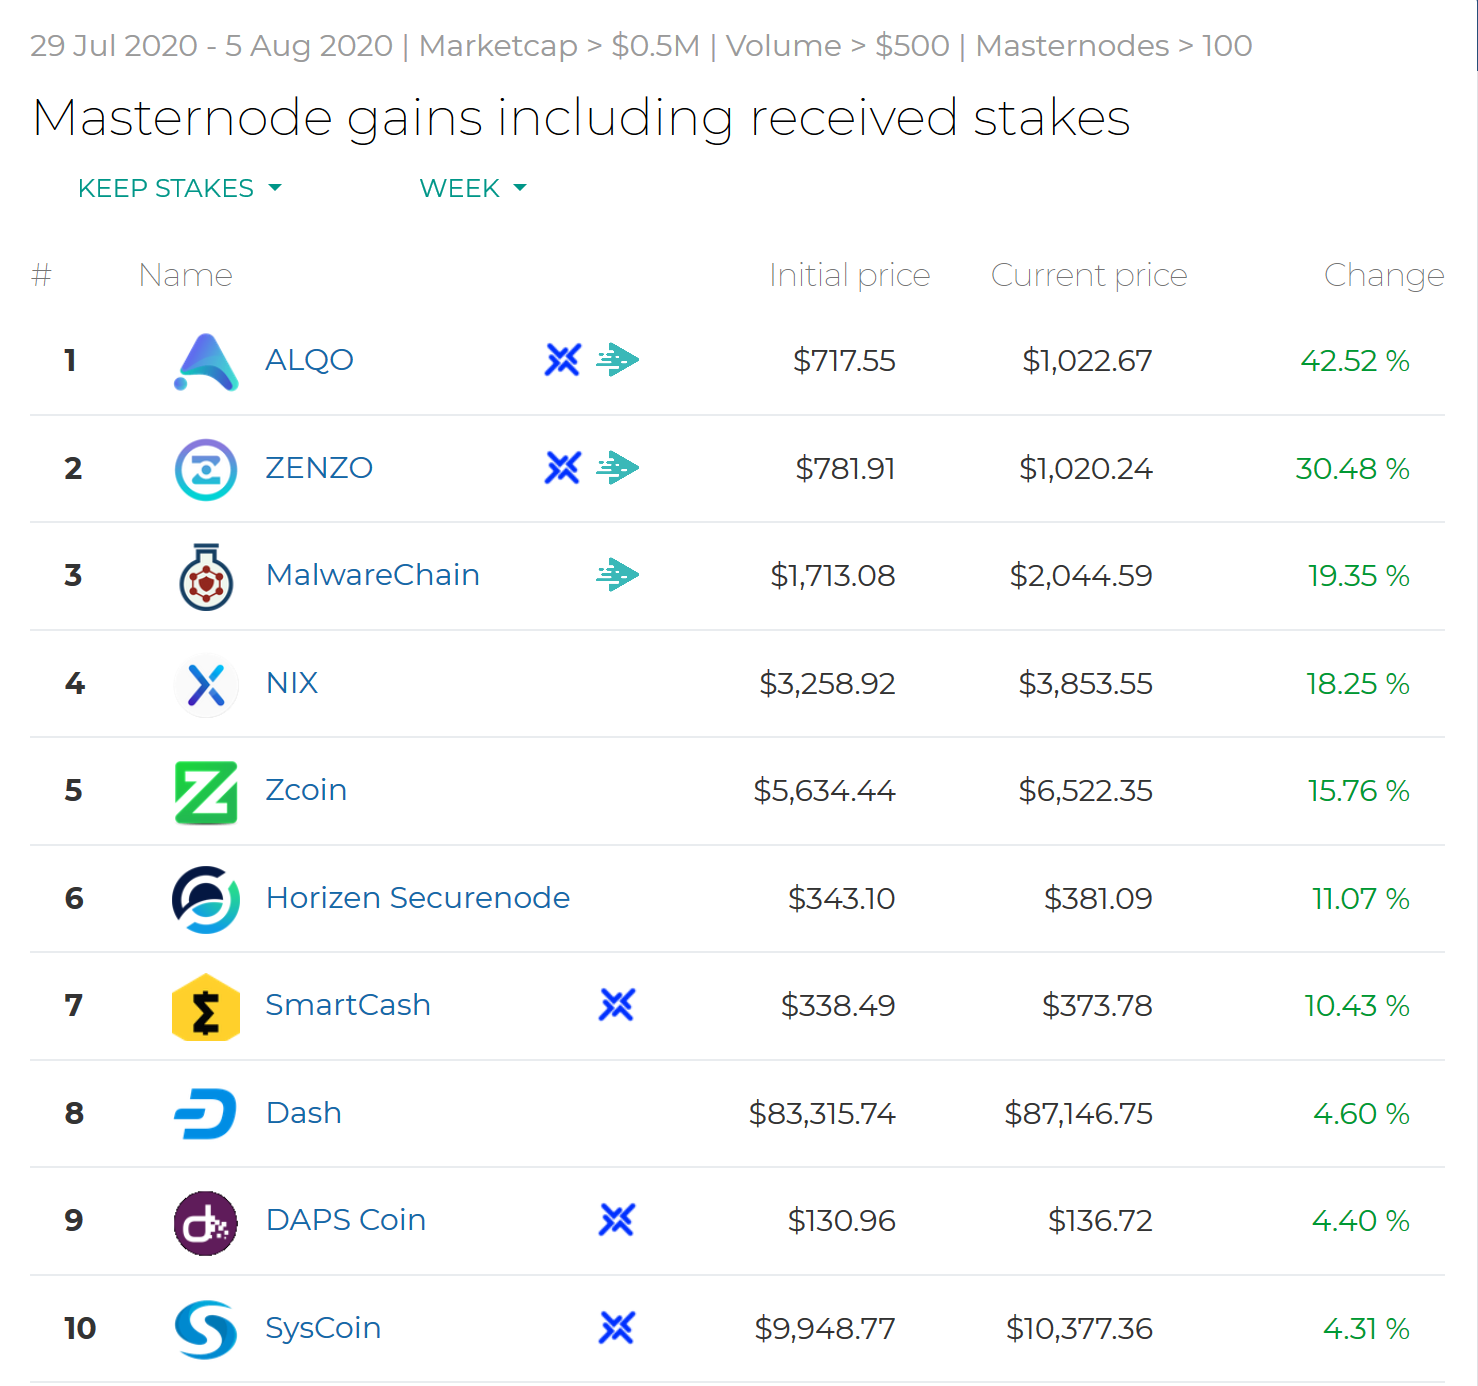 Screenshot_2020-08-05-Masternode-gains-including-received-stakes